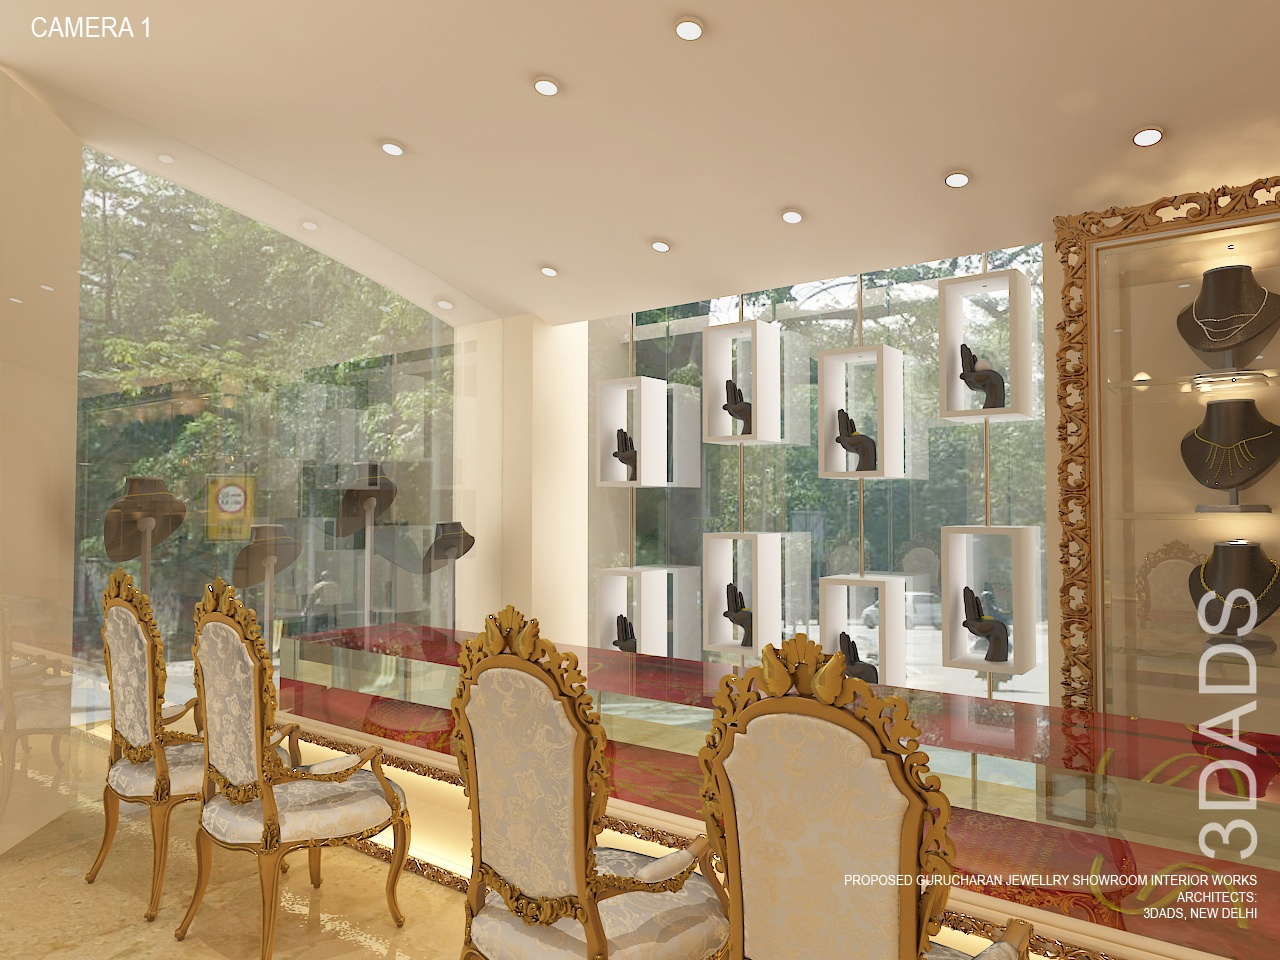 Modern Jewellery Showroom & Store Interior Design